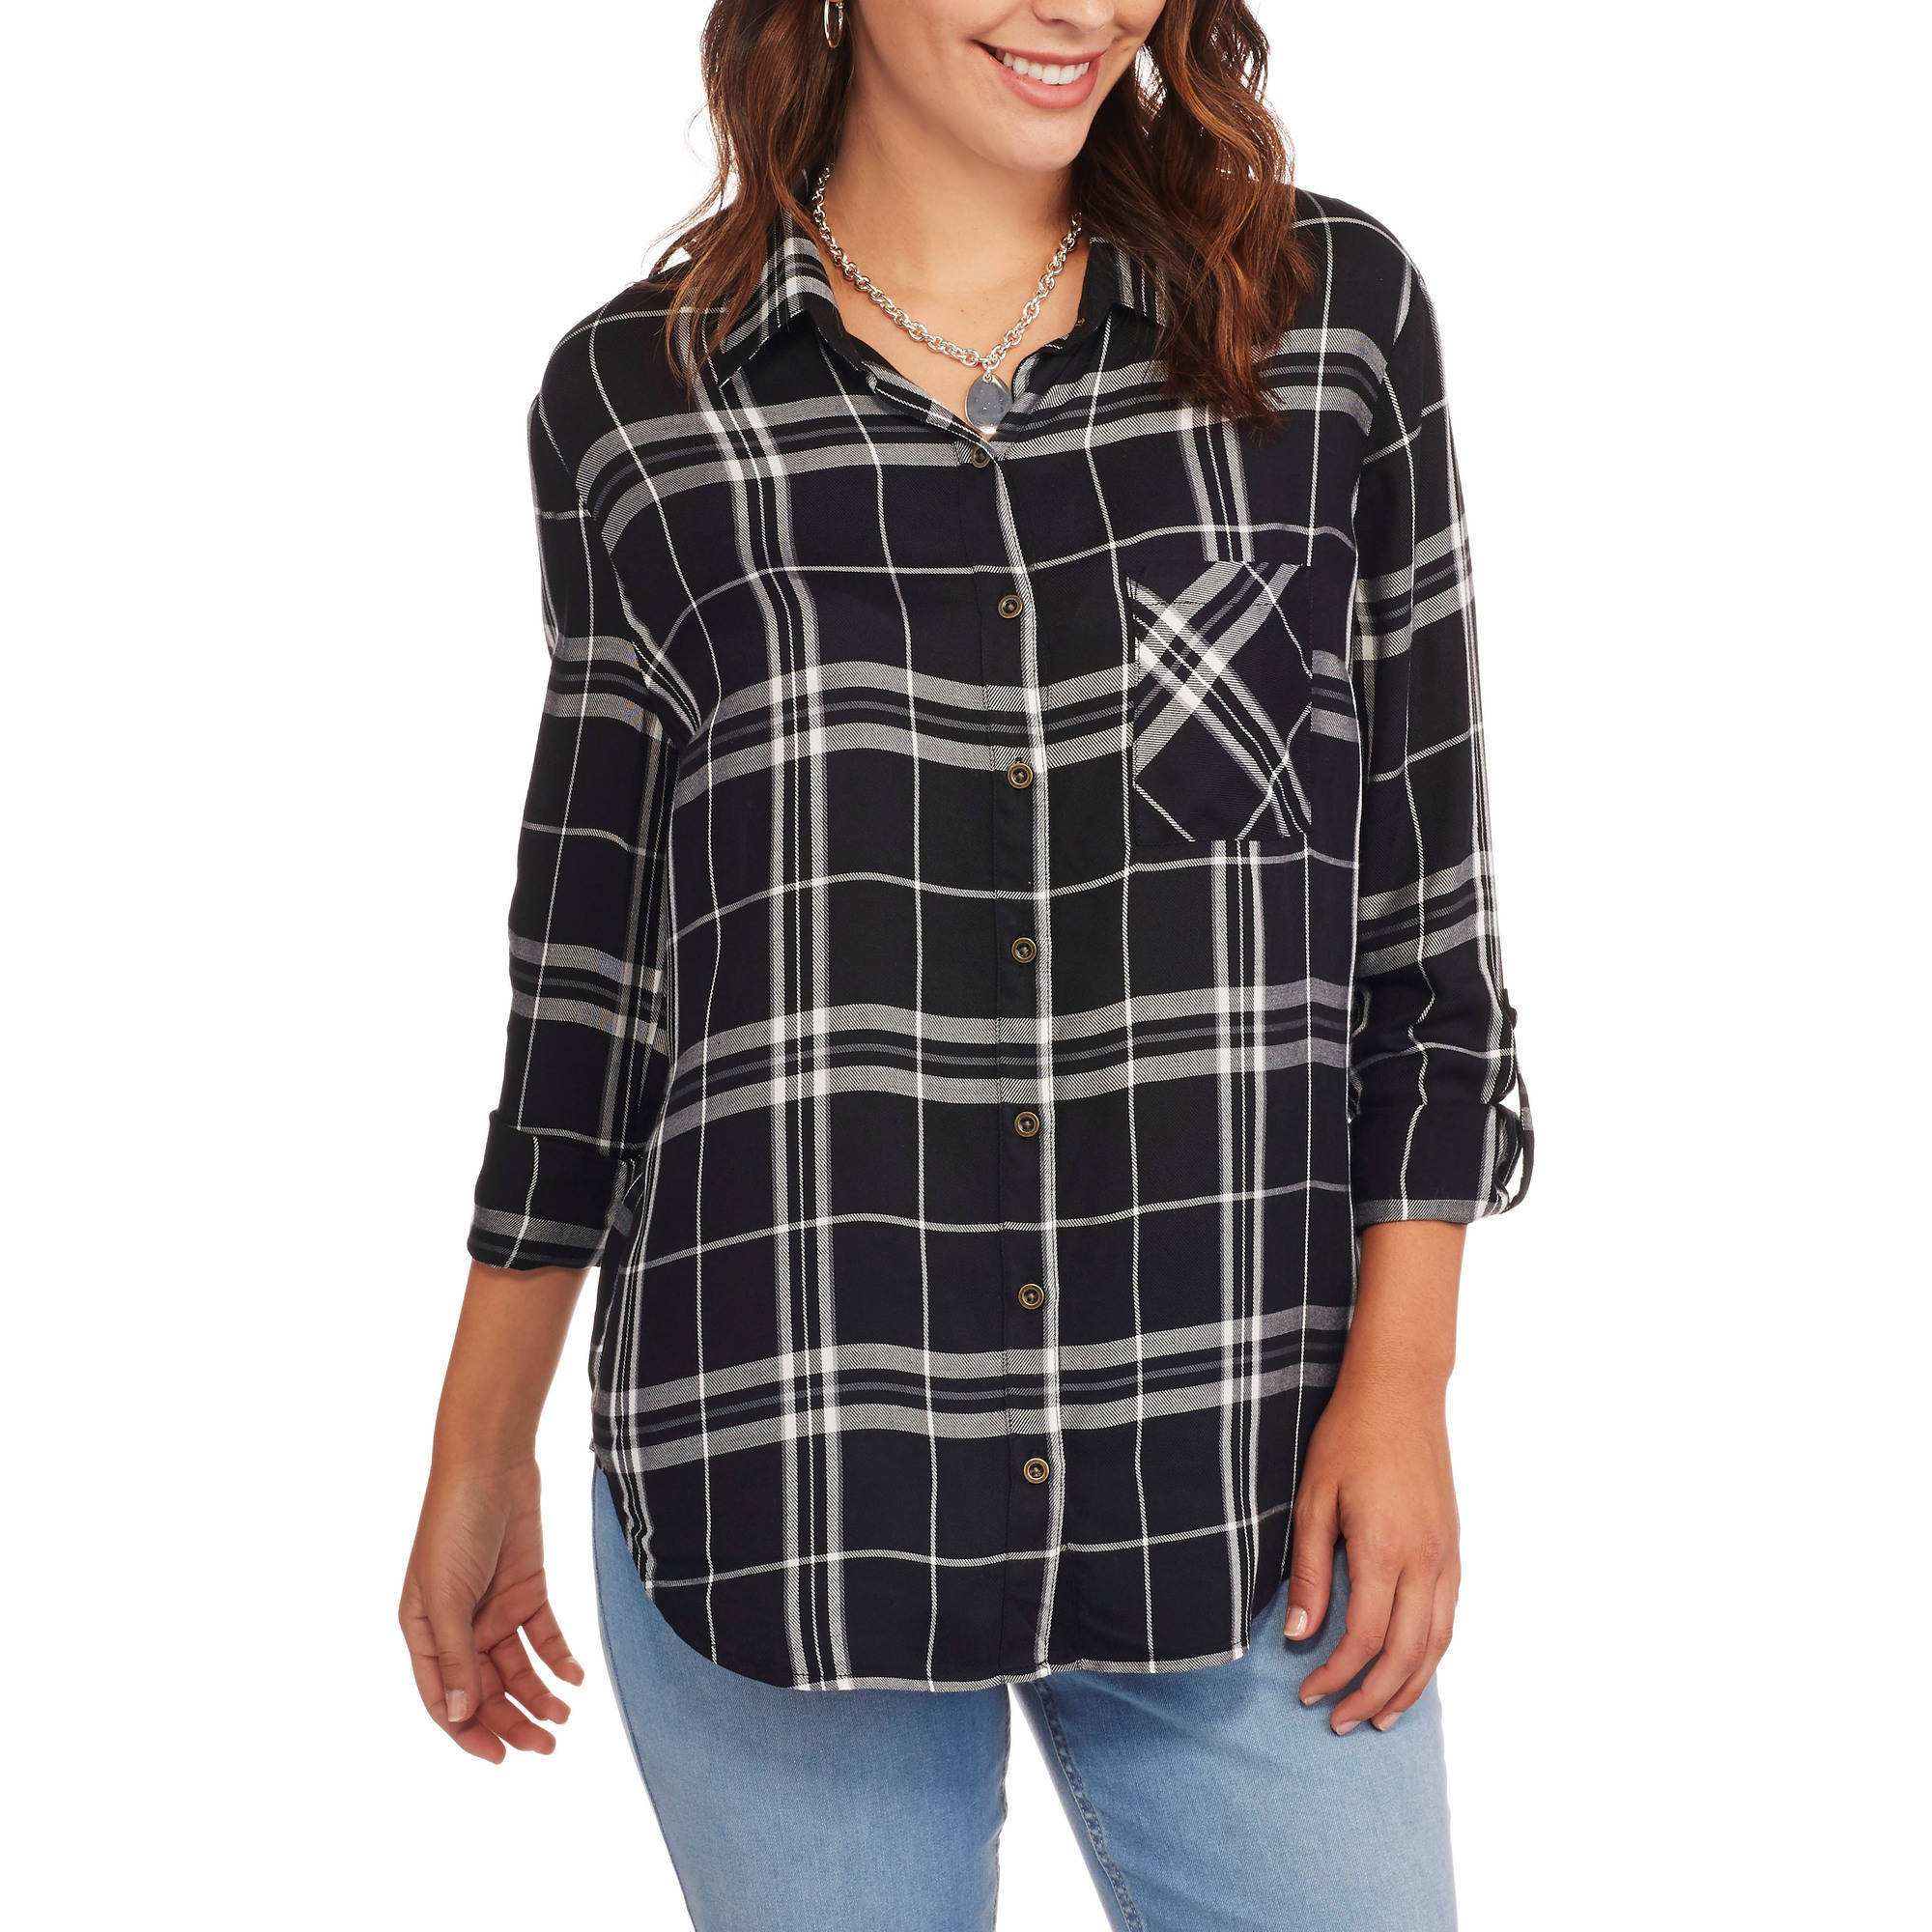 Faded Glory Women's Classic Plaid Lightweight Boyfriend Shirt